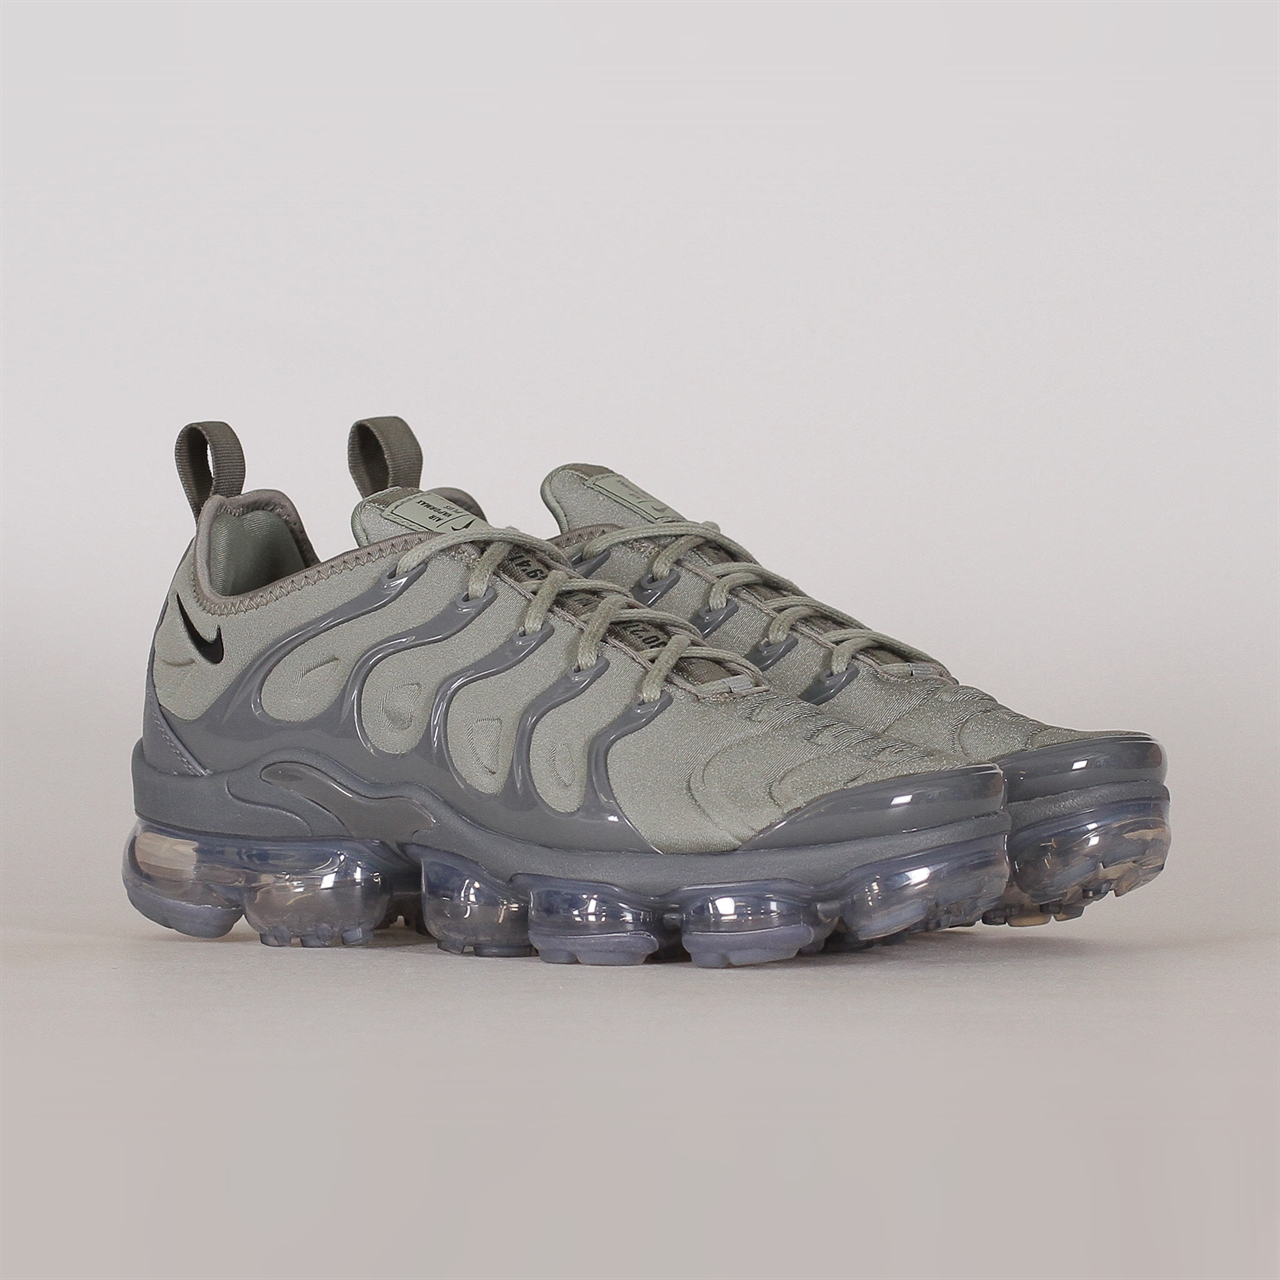 b7252143bc5 Shelta - Nike Sportswear Air Vapormax Plus (AT5681-001)